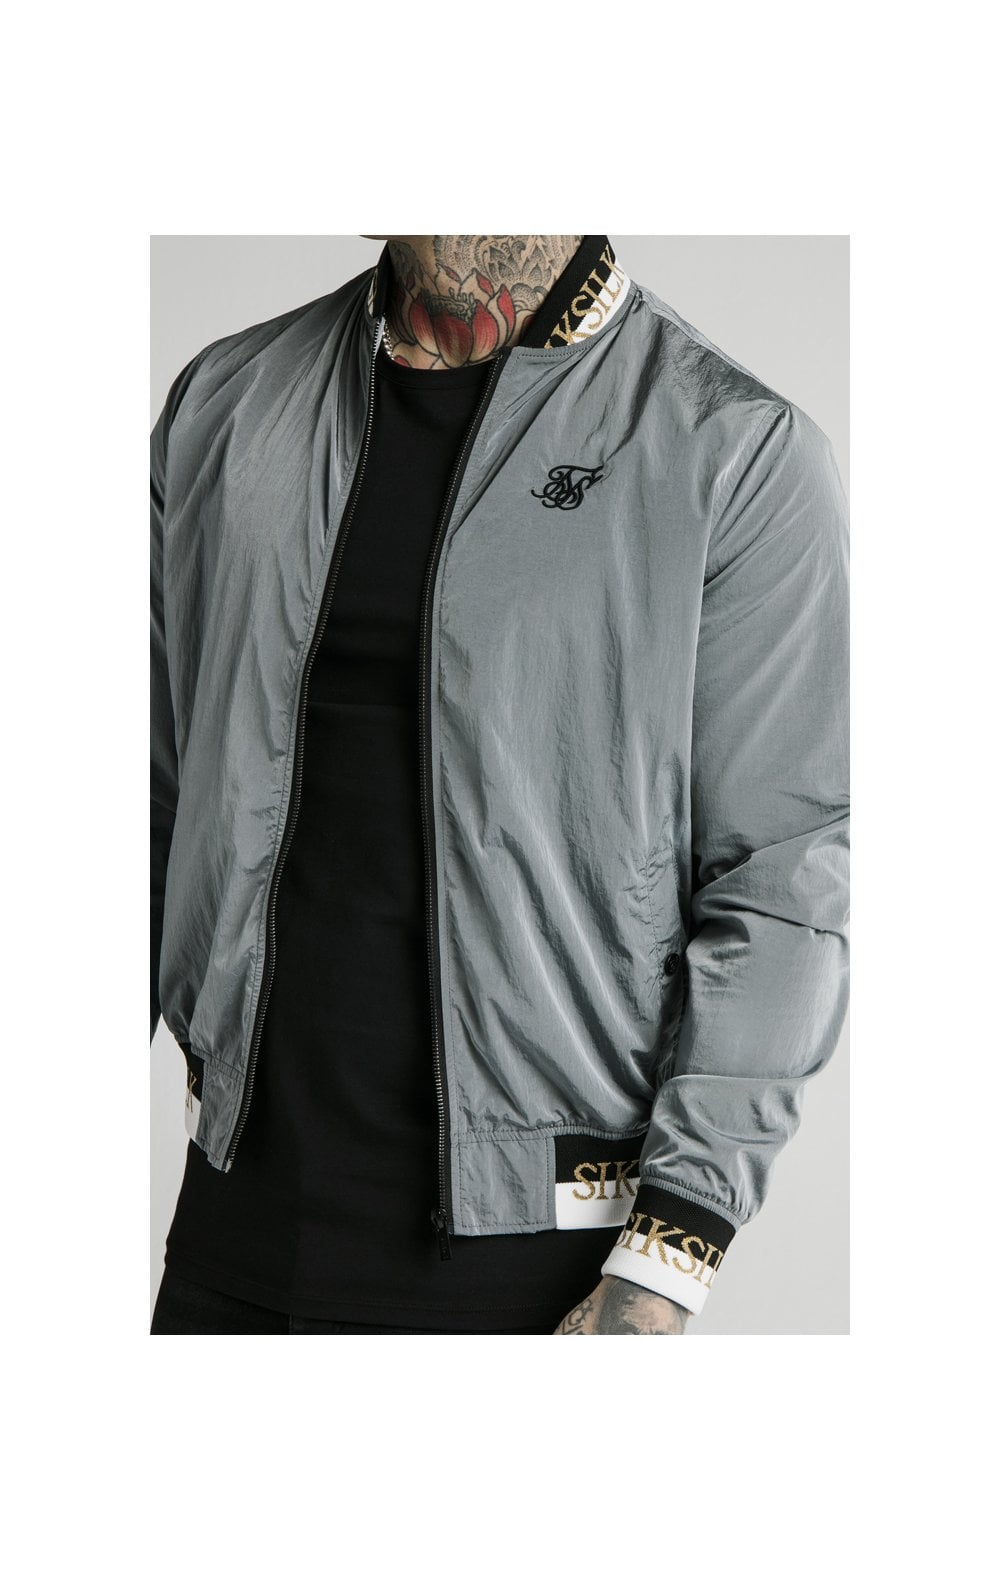 SikSilk Crushed Nylon Bomber Jacket - Grey (2)